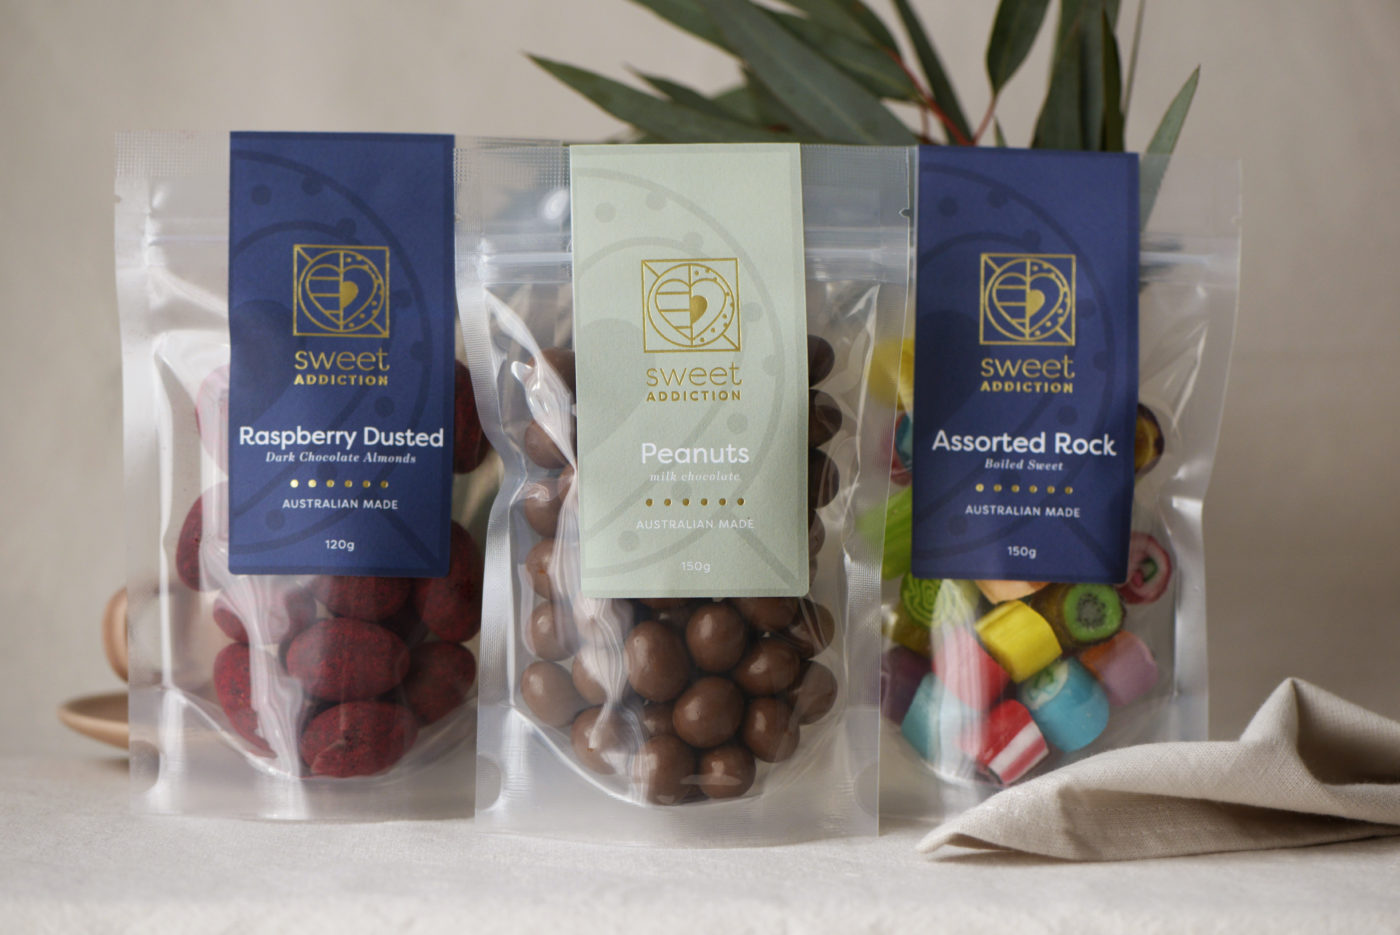 Sweet Addiction clear packaging with green and navy Read Labels & Packaging food labelling